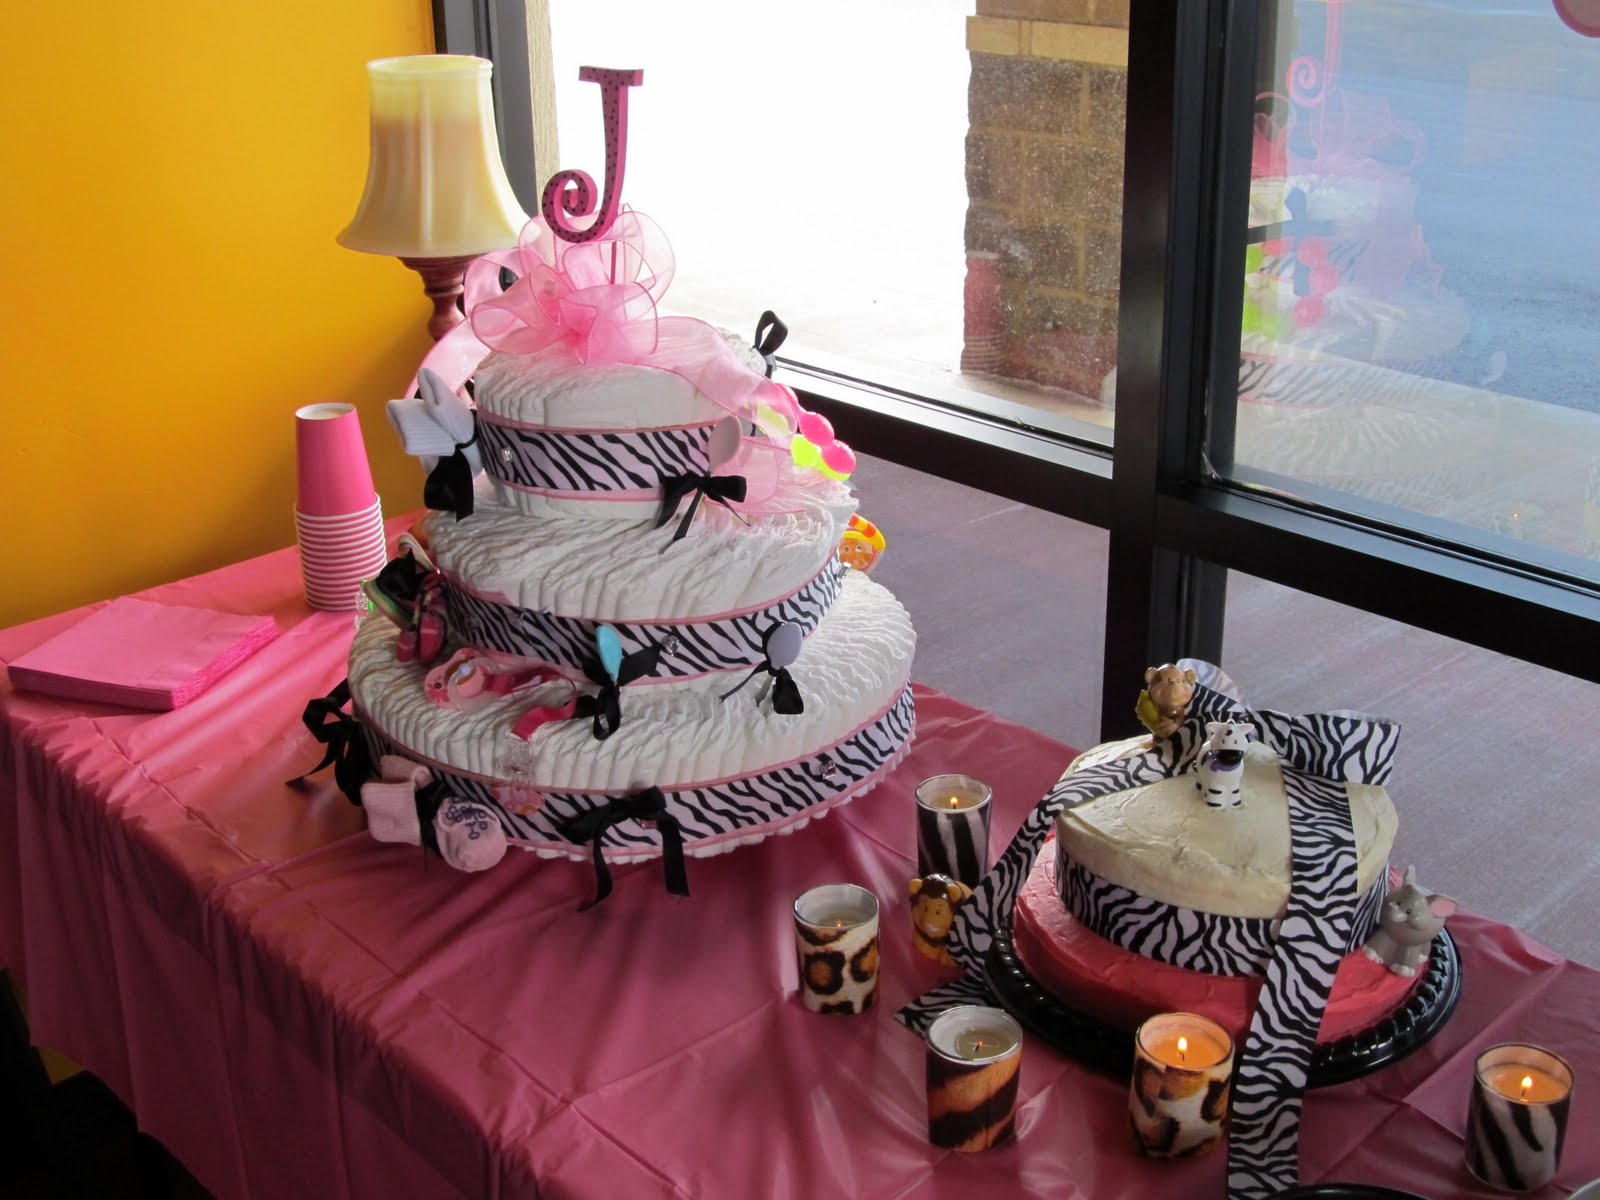 Cheetah Print Baby Shower Theme http://eventsdee-signed.blogspot.com/2011/06/animal-print-baby-shower.html